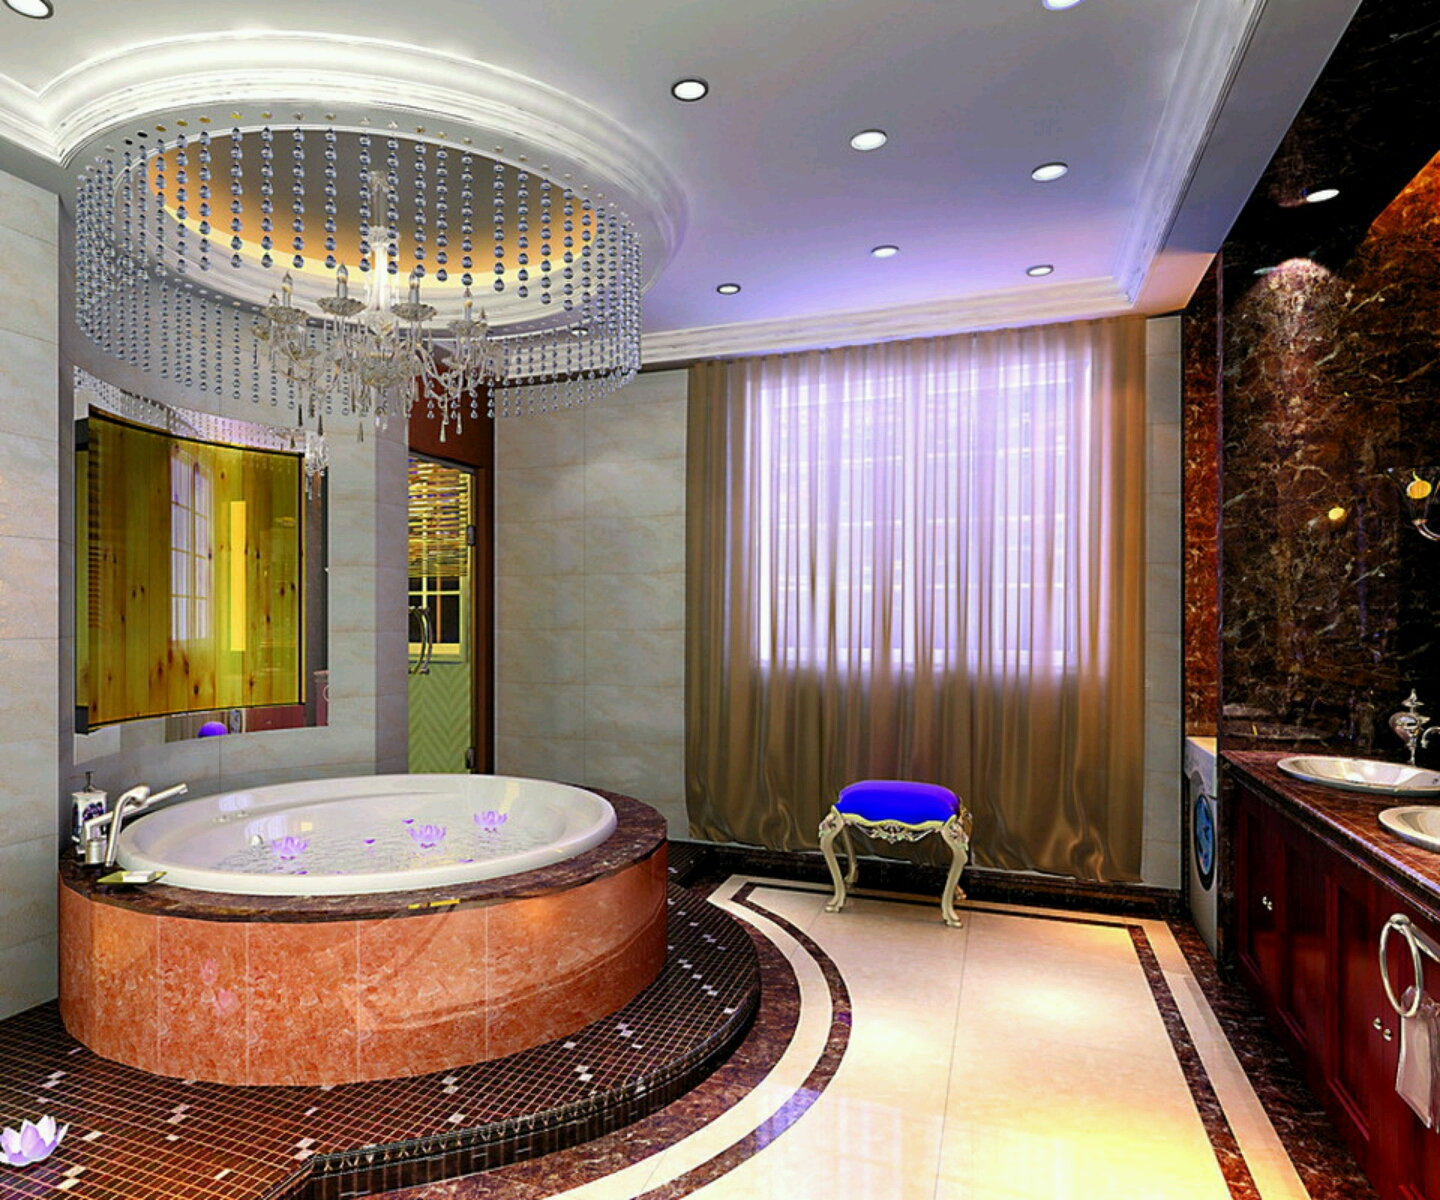 Luxury bathrooms designs ideas new home designs for New bathtub designs